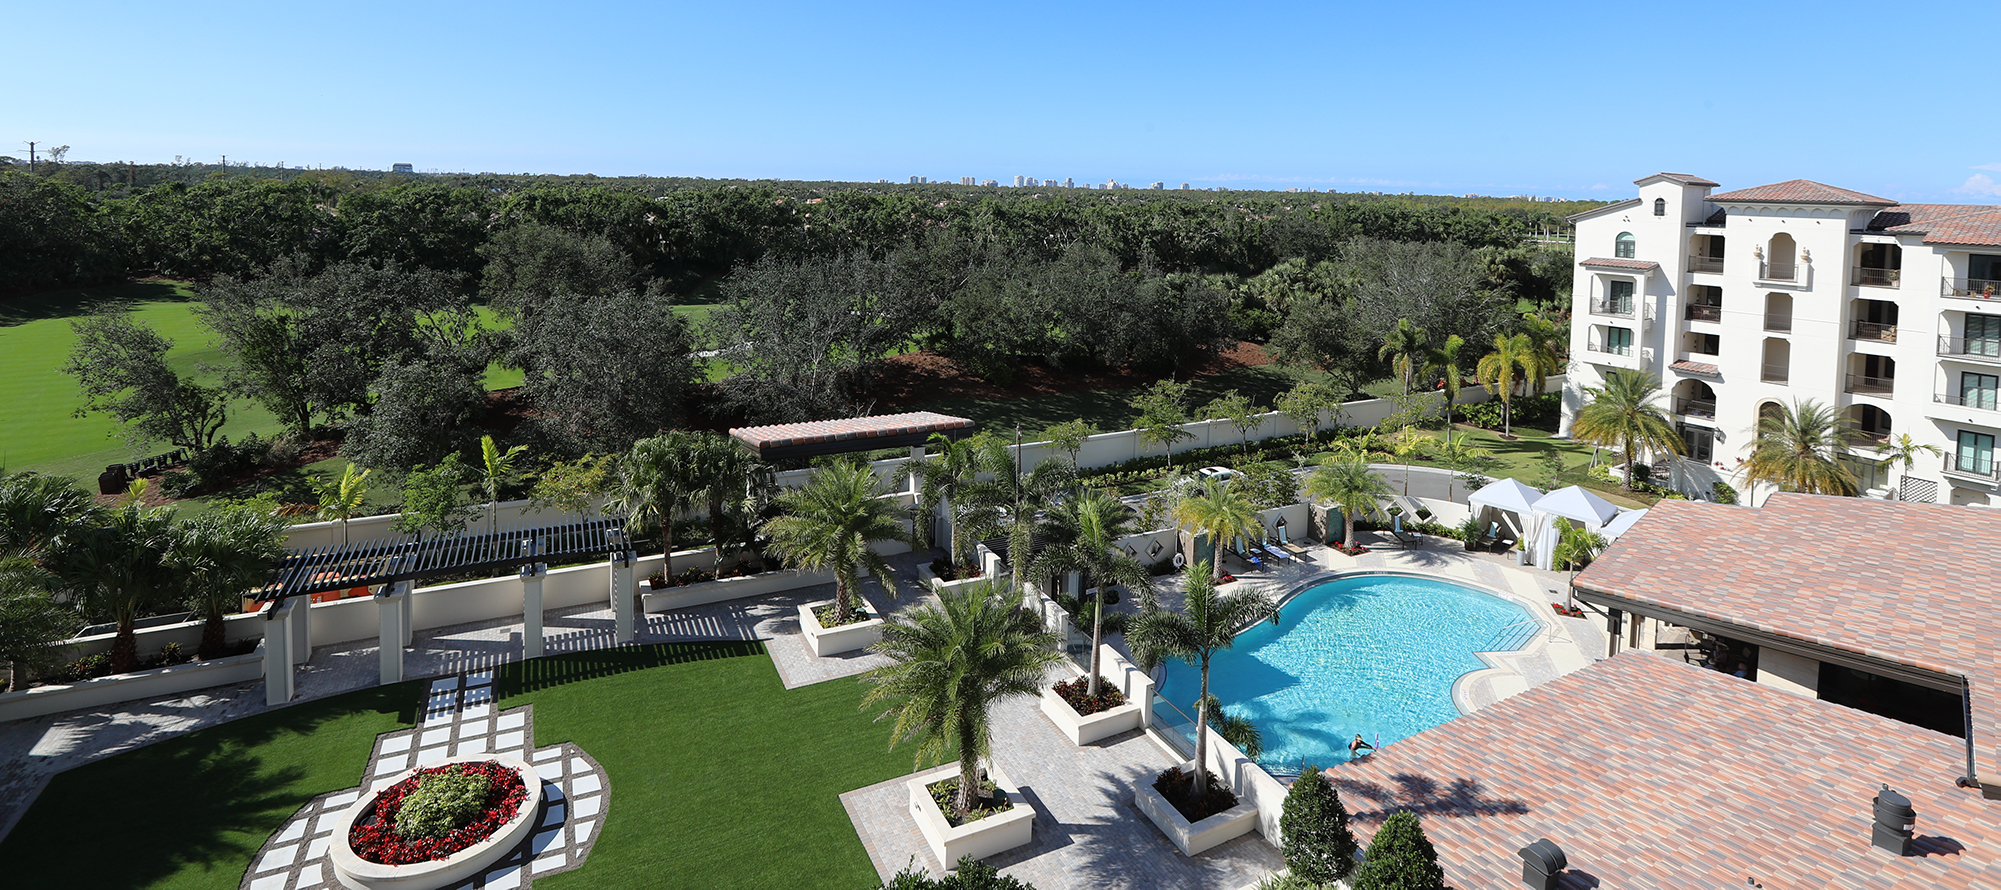 scenic view of Moorings Park's campus in Naples, Florida